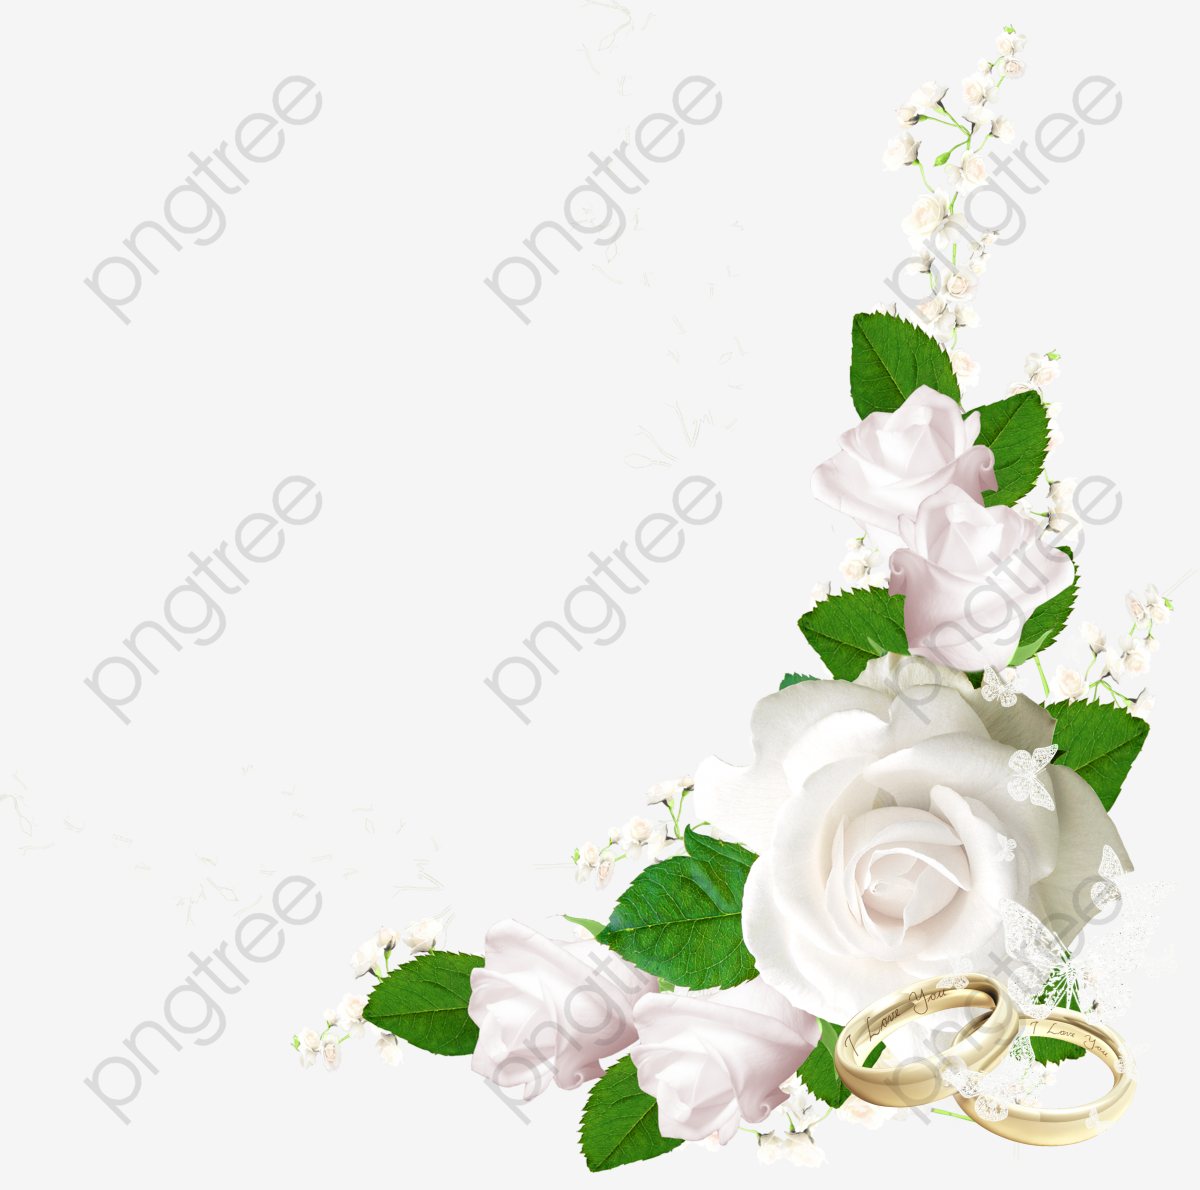 Flowers White Rose Ring PNG Transparent Clipart Image And